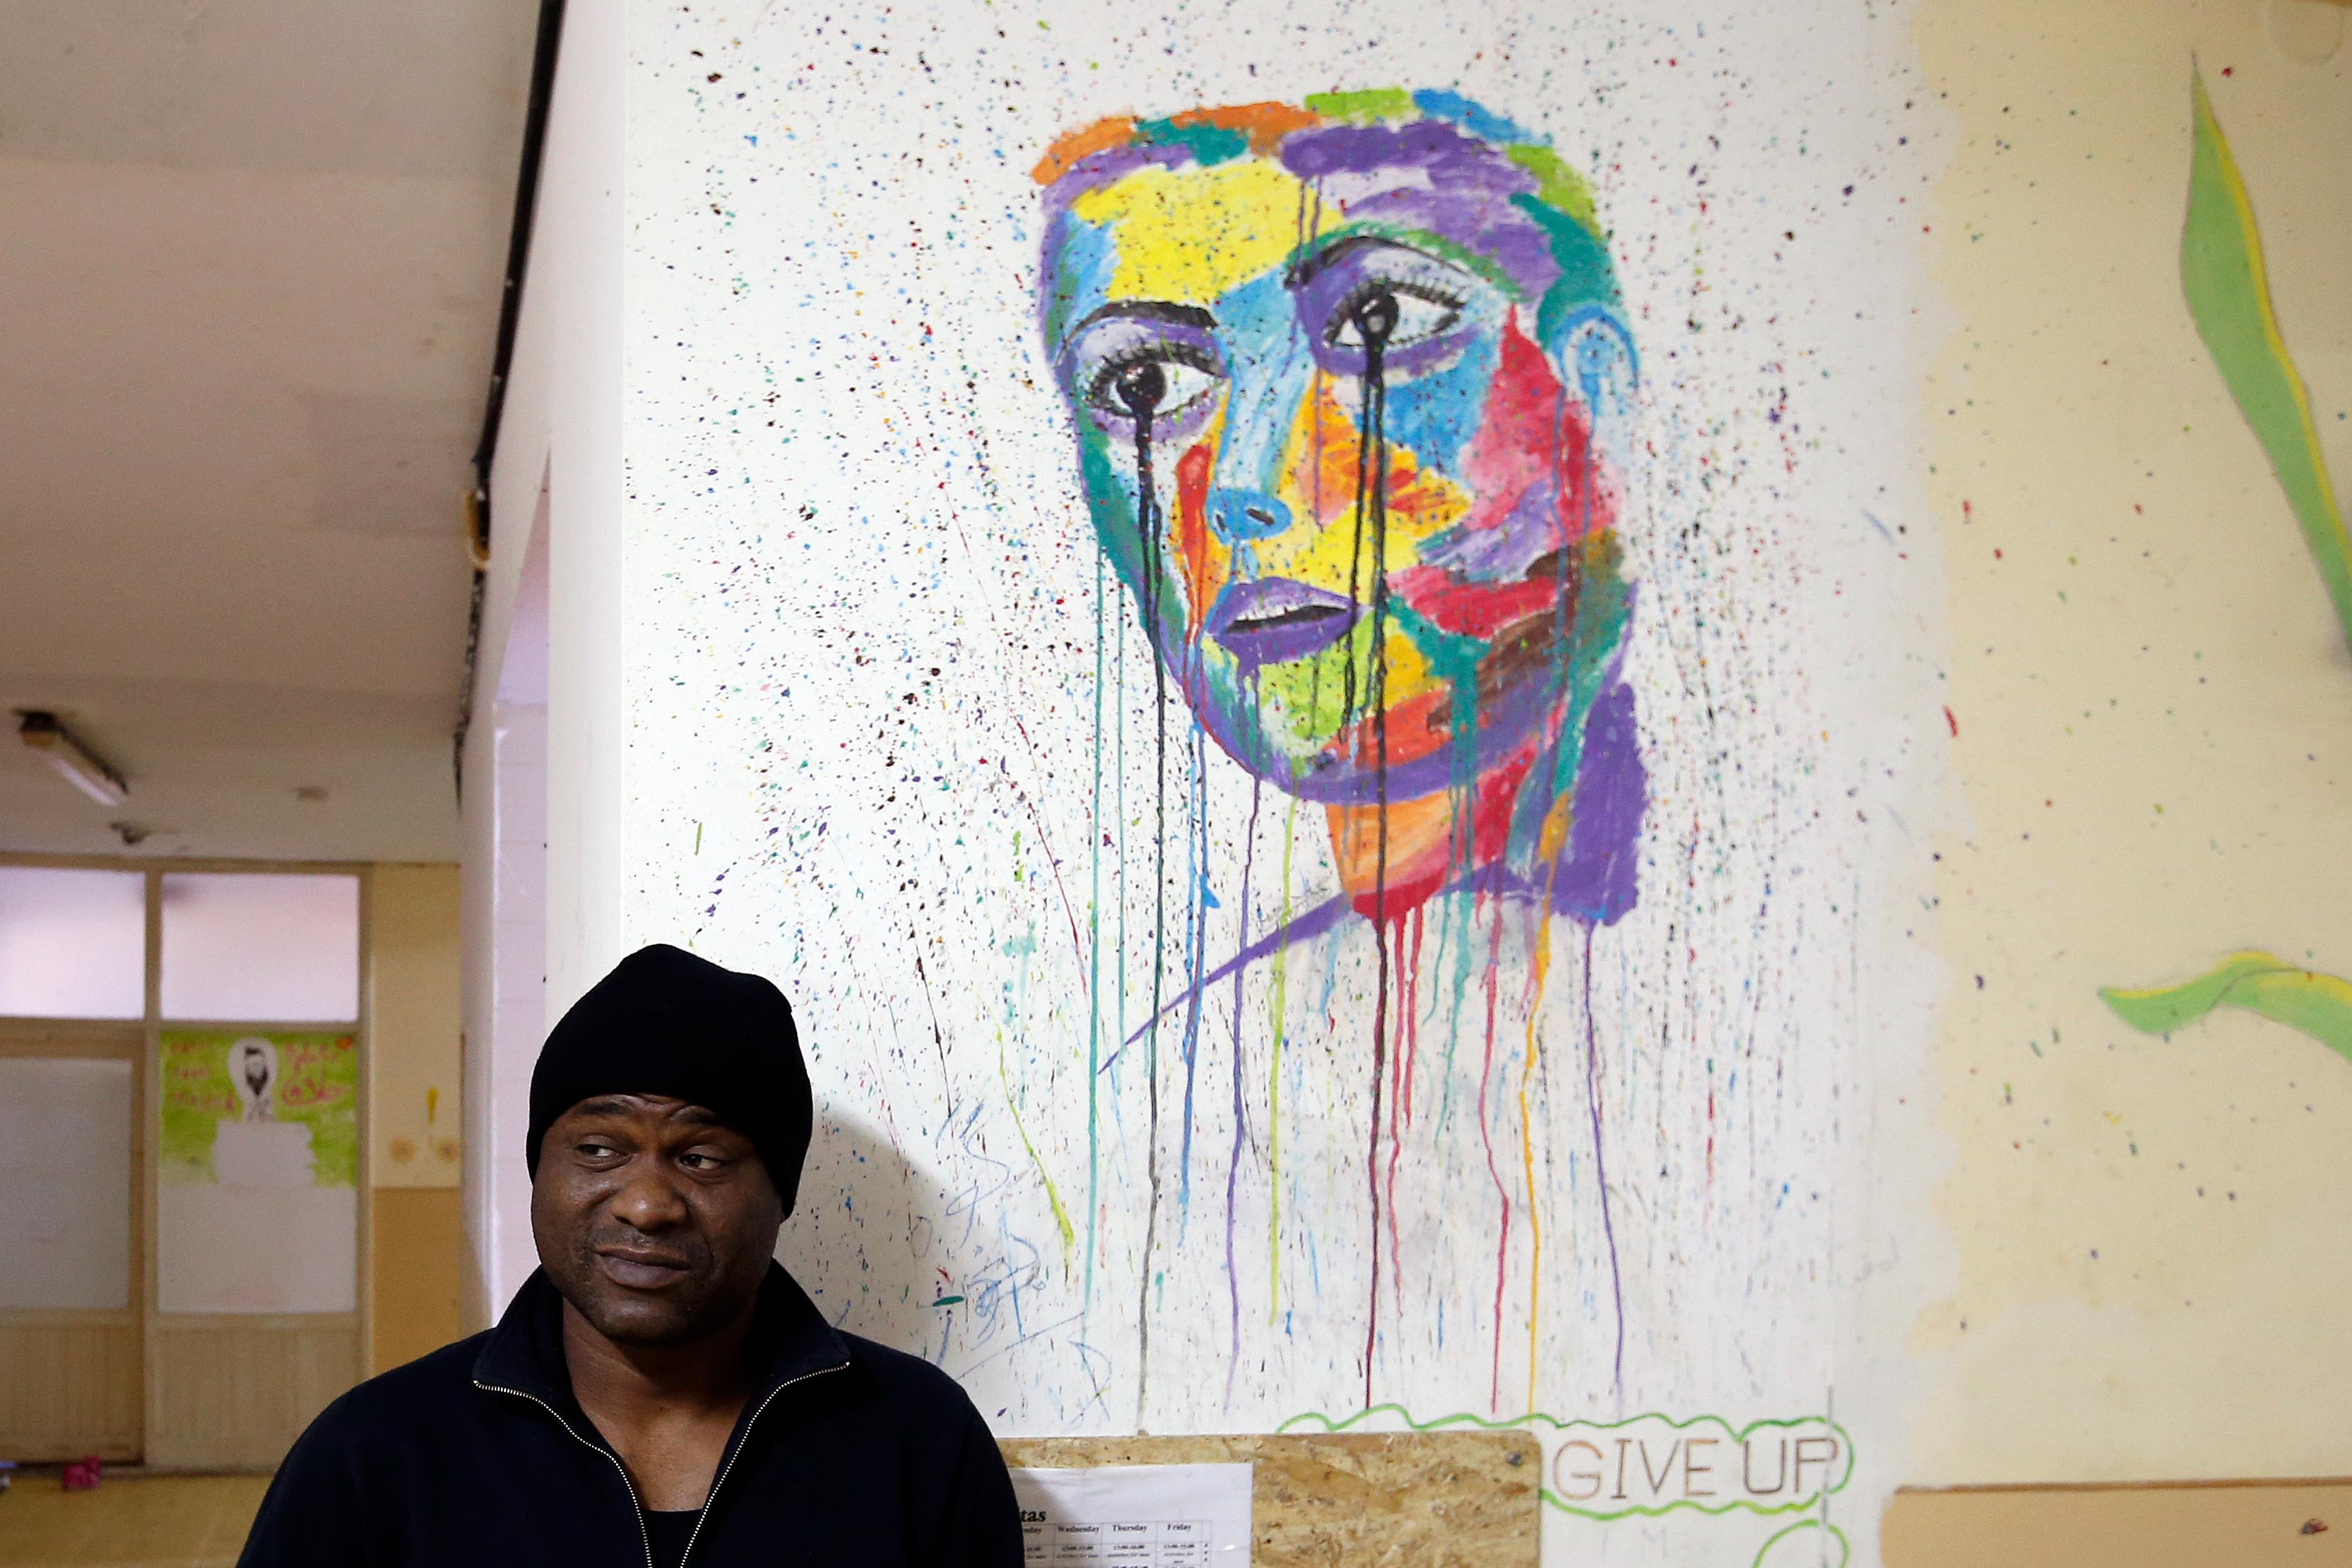 A Cuban migrant Michael Amor stand by a mural in the center for refugees in Sot, about 100 km west from Belgrade, Serbia, Thursday, Feb. 1, 2018. Far away from sandy beaches and a balmy Caribbean breeze, a Cuban family huddles together in a cramped room of a Serbian refugee center, trying to figure out what to do next. They are part of an unlikely influx of Cuban migrants to the Balkans that began in 2015 before neighboring European Union countries sealed off their borders. Most Cuban migrants in Serbia say they had to make the trip after the U.S. revoked Cubans' special migration status last year.(AP Photo/Darko Vojinovic)